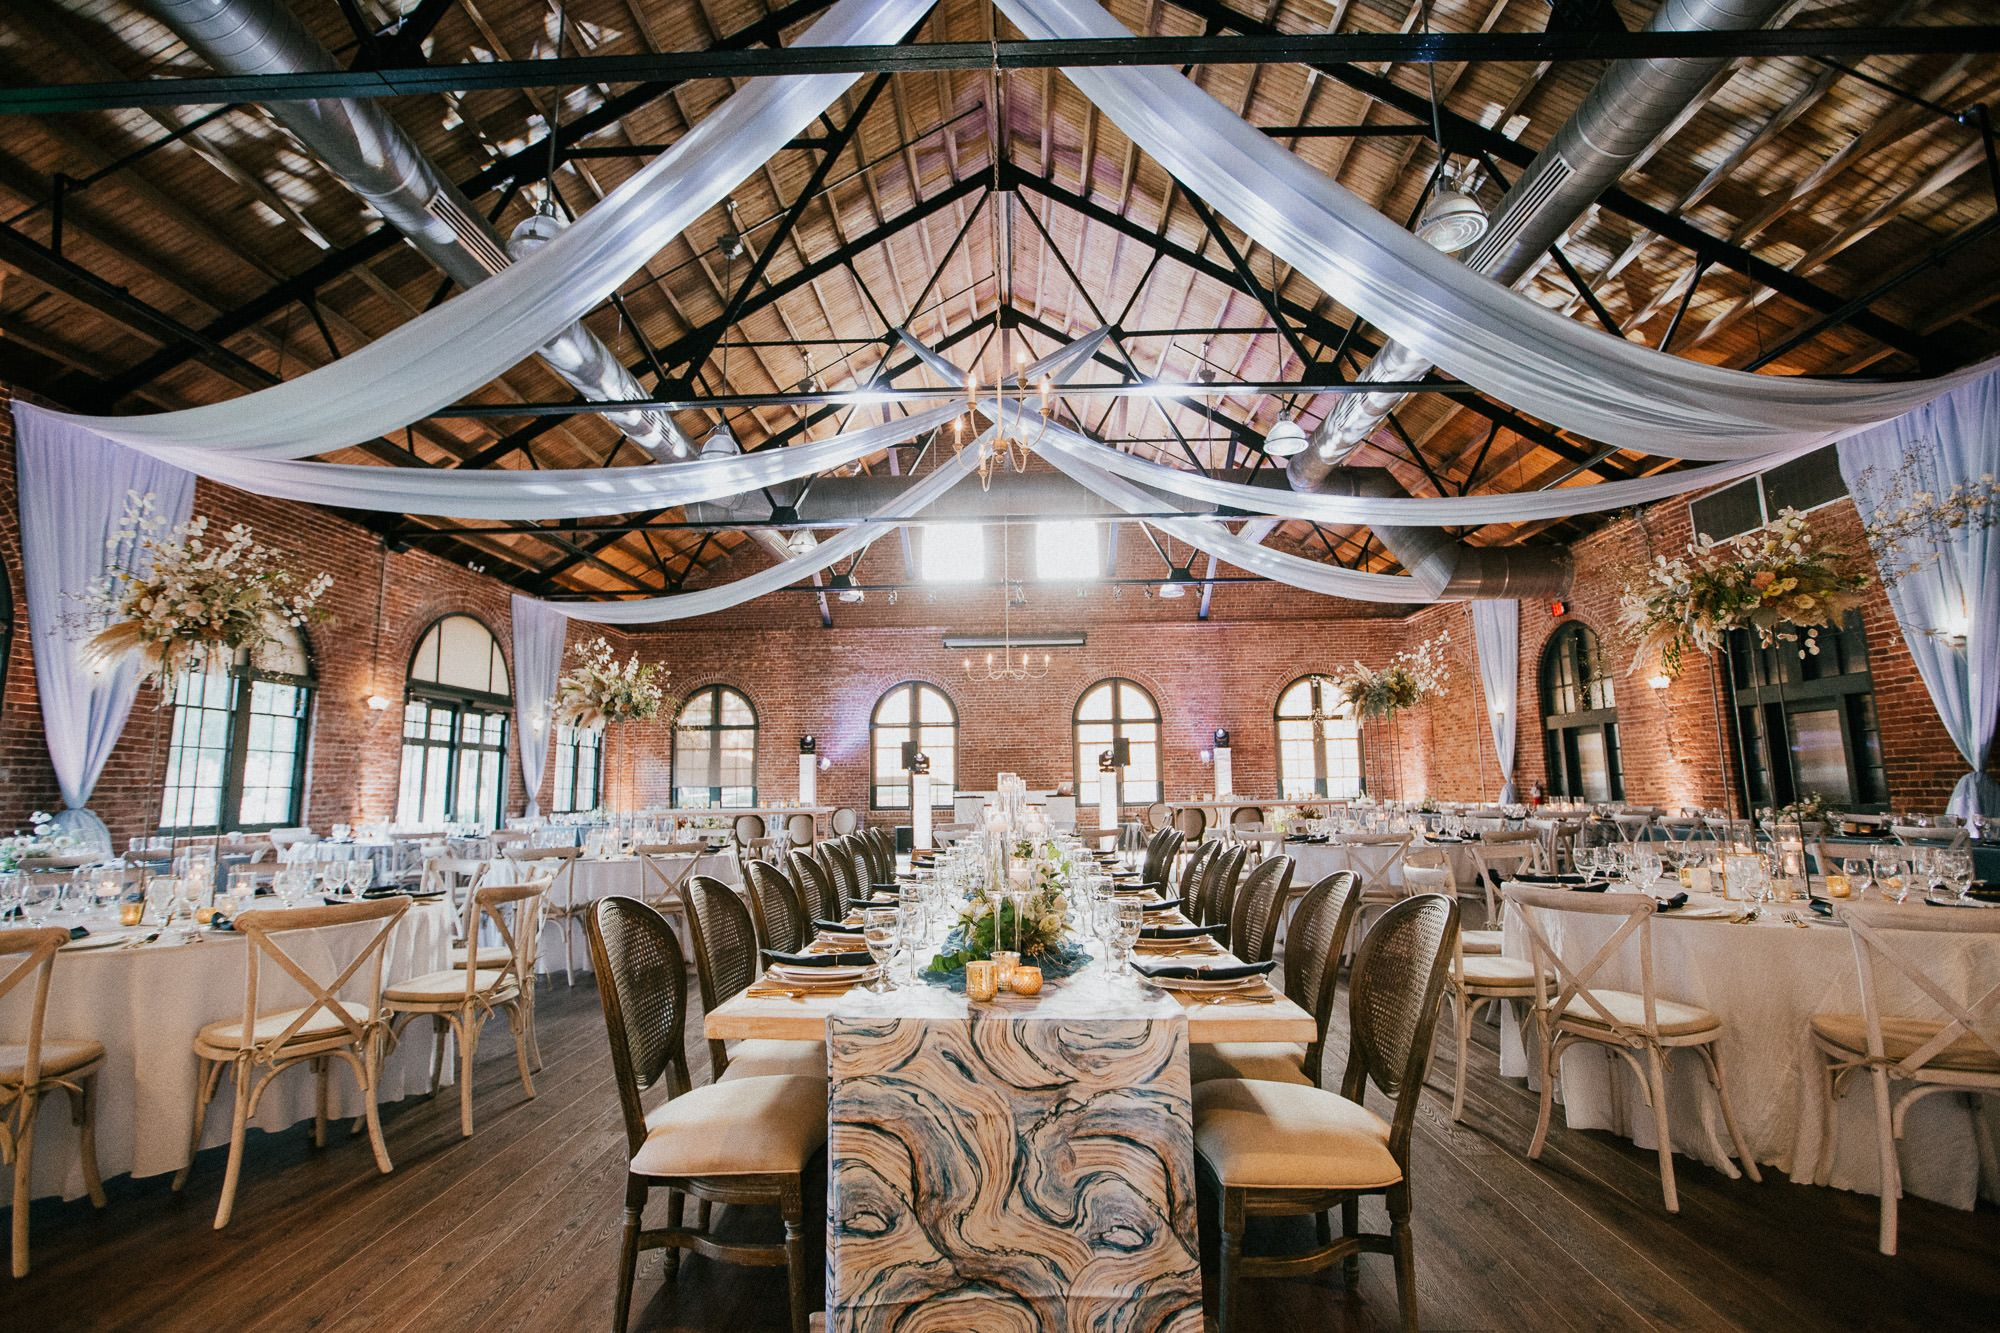 6 Amazing Wedding Venues In Greenville Sc The Upstate Bespoken Wedding Planner In South Carolina North Carolina And Georgia Wedding Venues South Carolina Greenville Sc Wedding Greenville Weddings